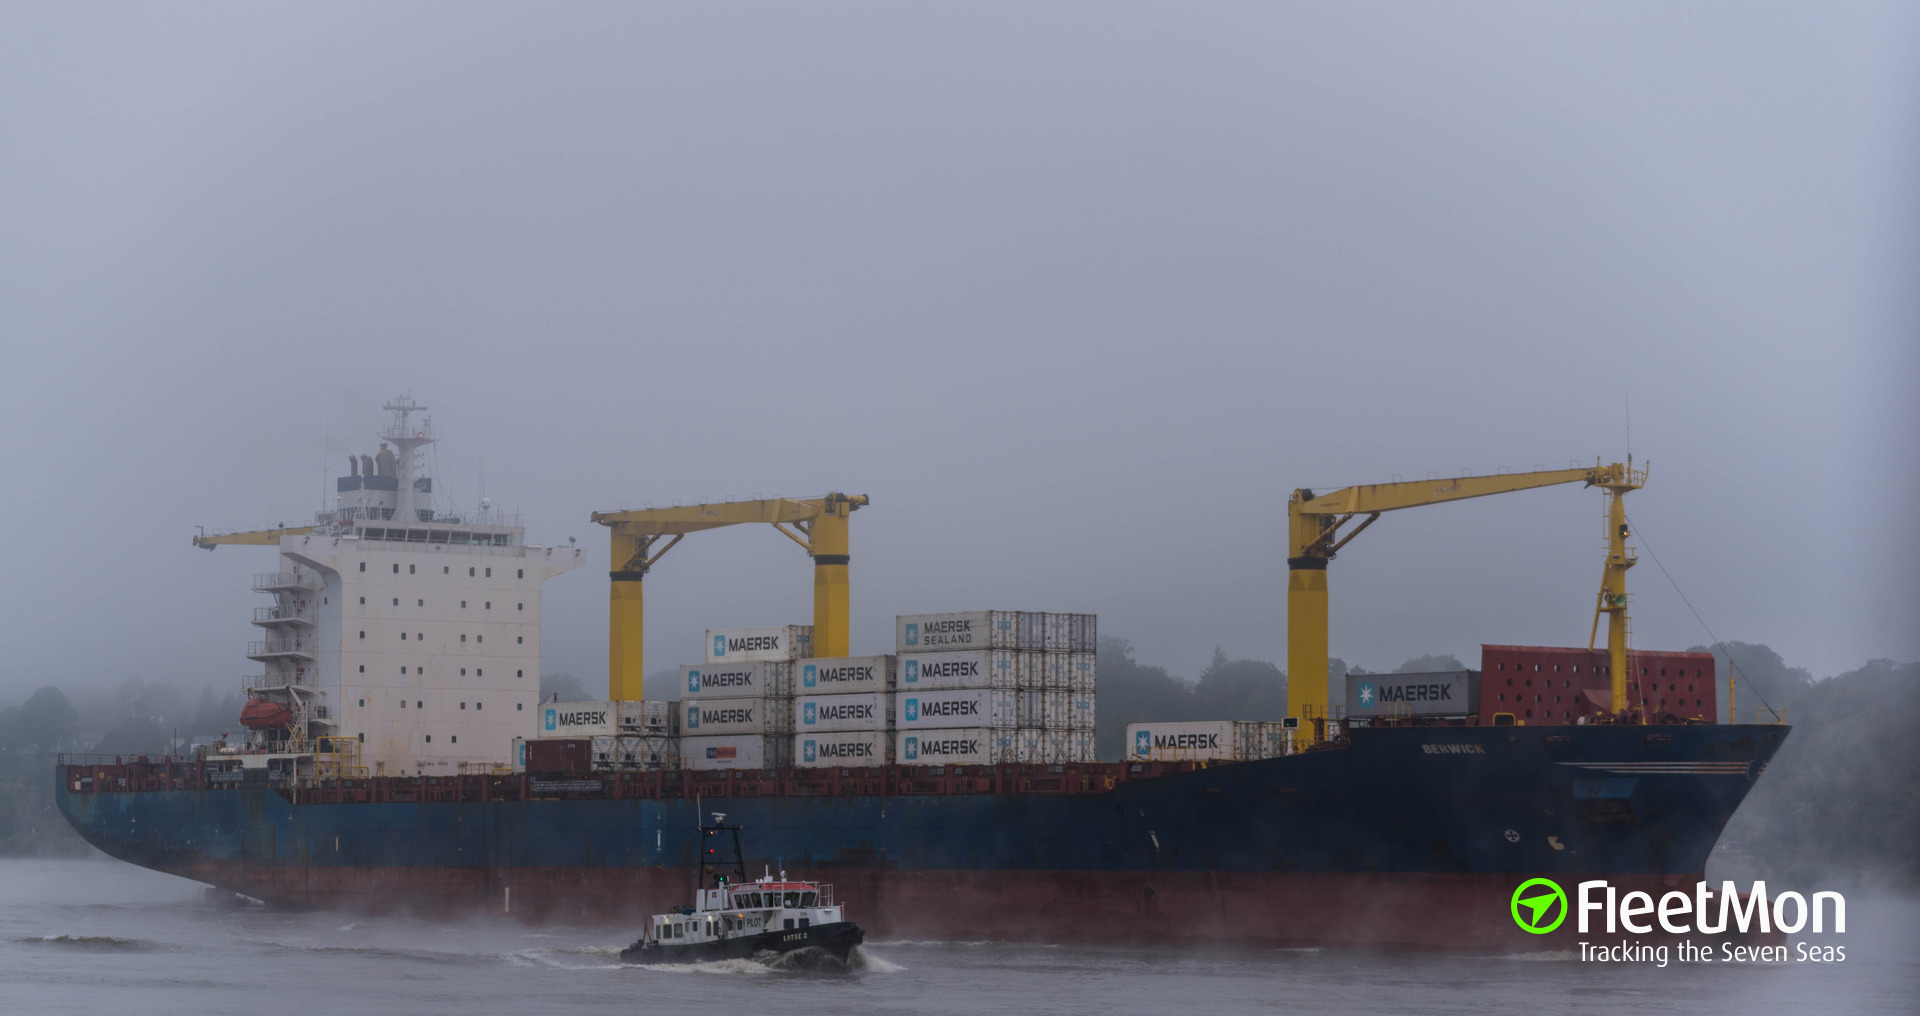 Container ships BERWICK and VICTORIA collided off Hook of Holland UPDATE